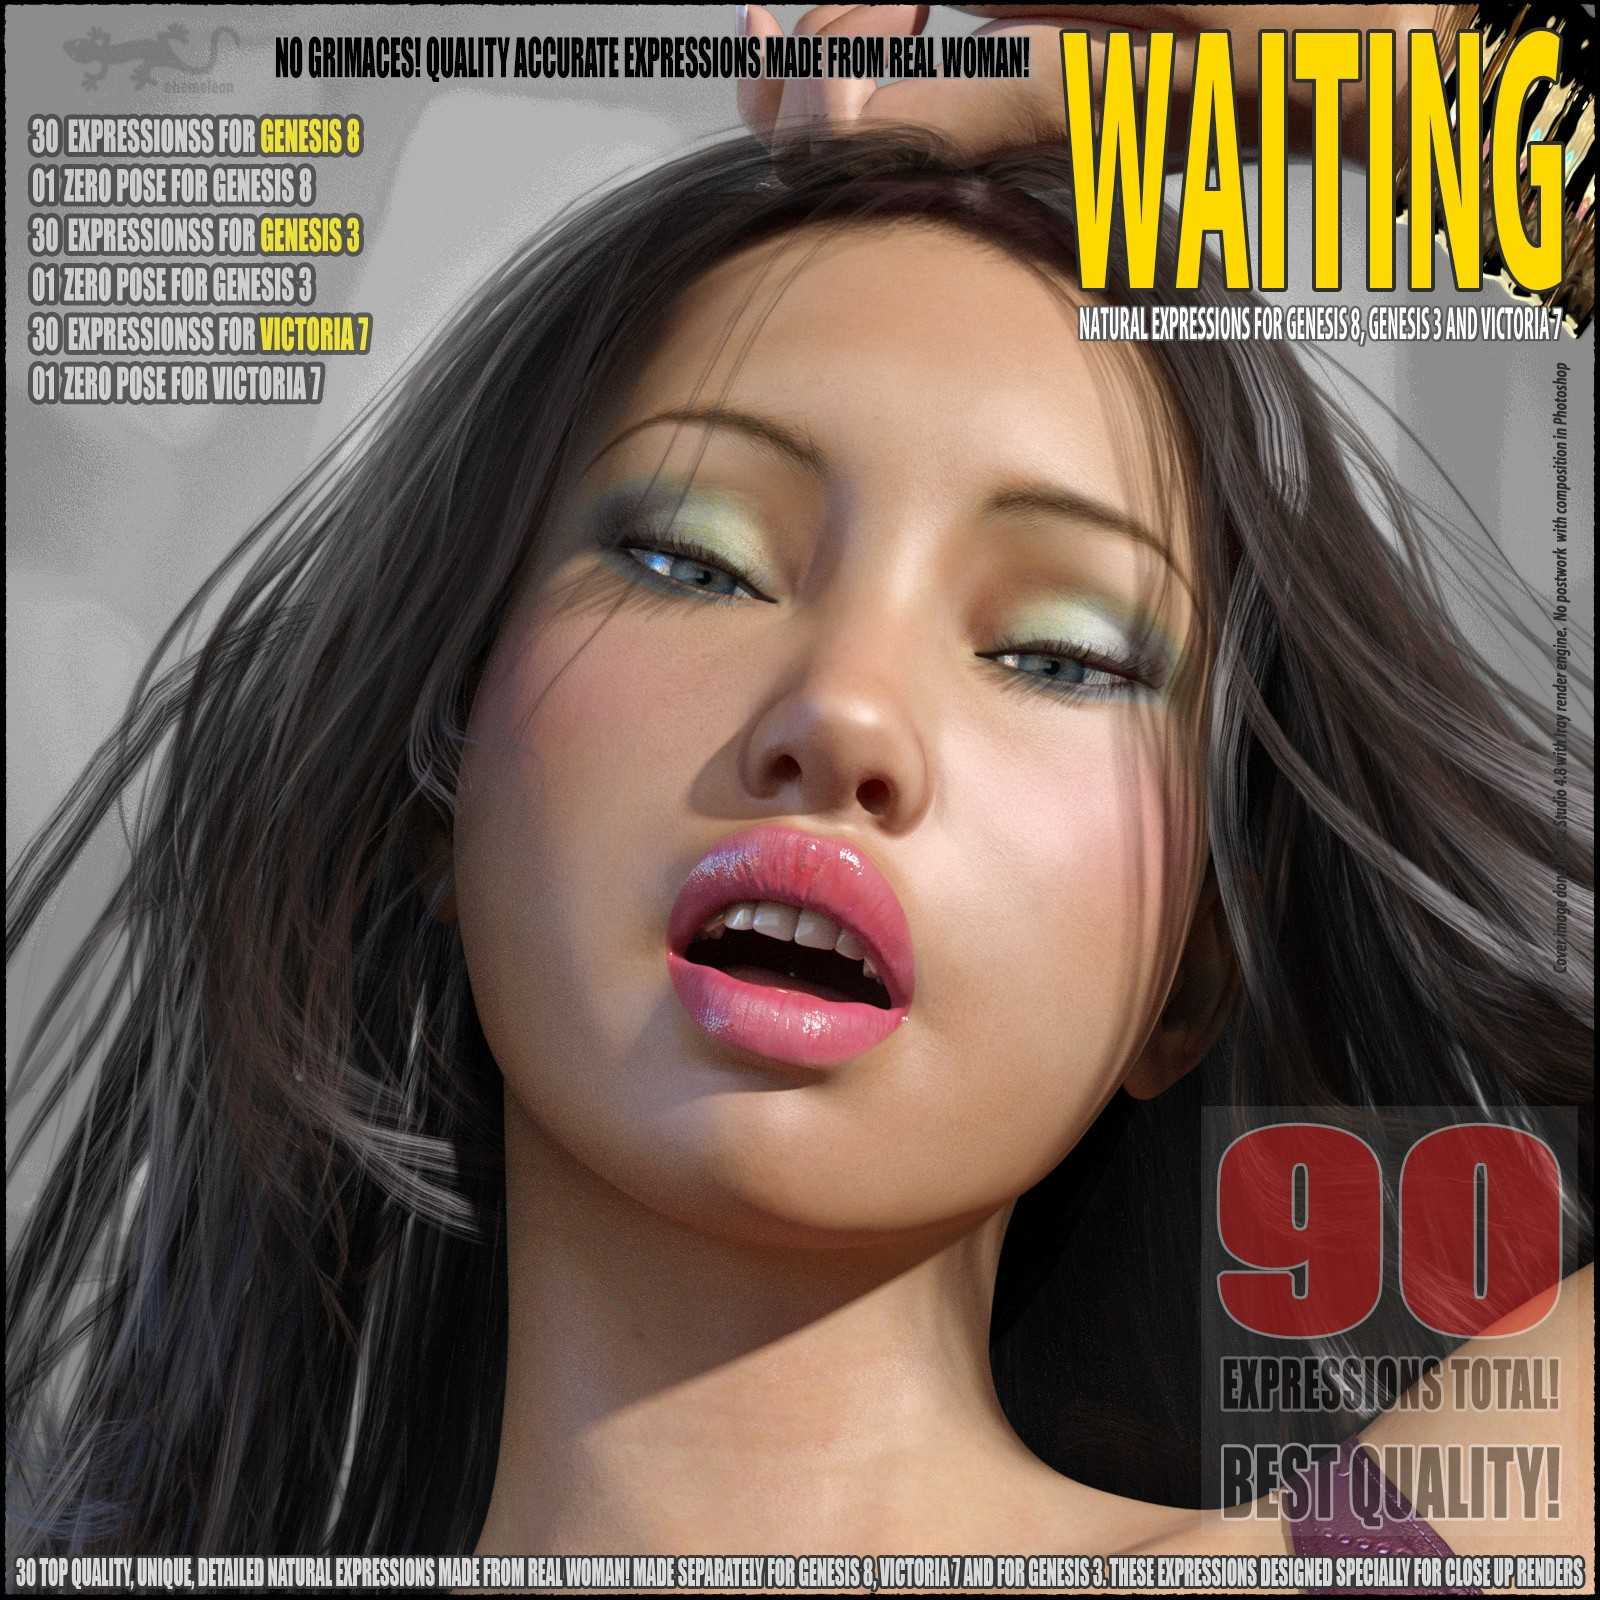 Waiting – expressions for G8, G3 and V7